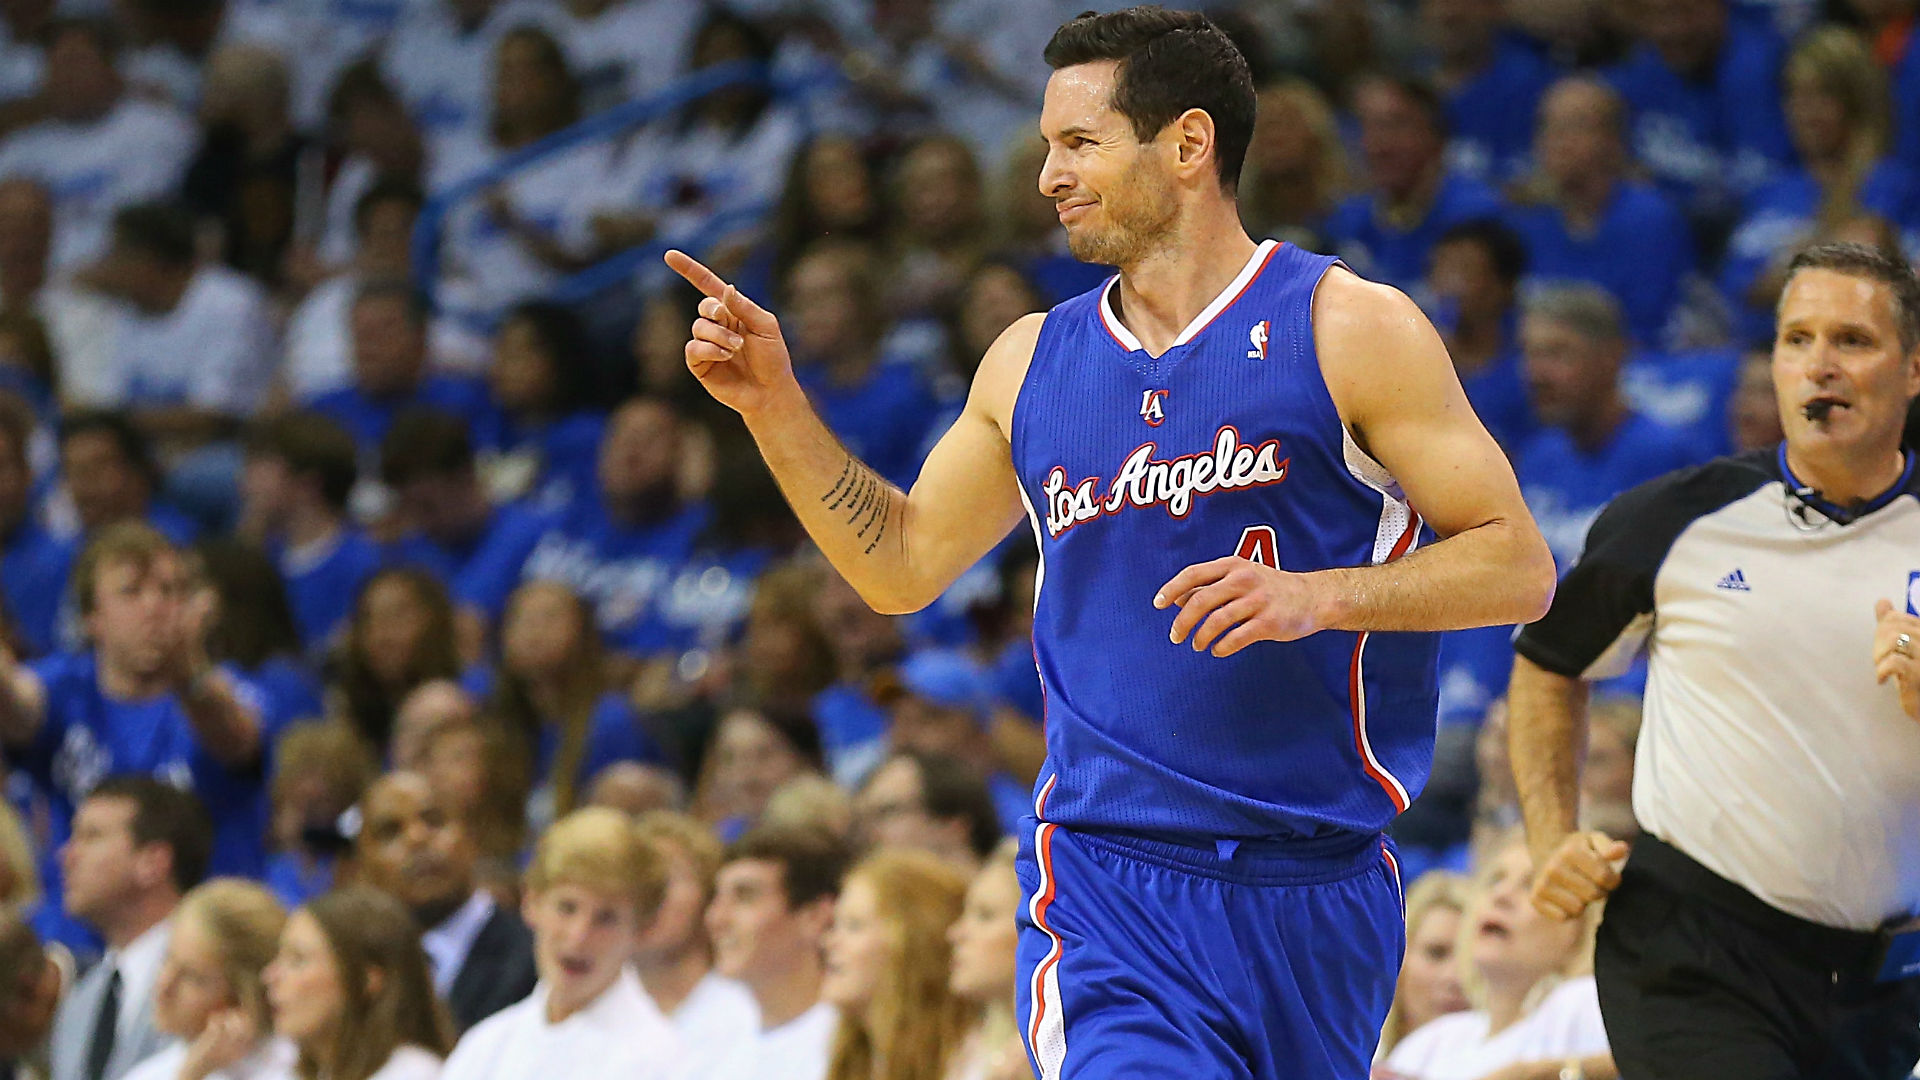 huge selection of 60d80 3b82c J.J. Redick: Congrats to UNC — and every player should have ...